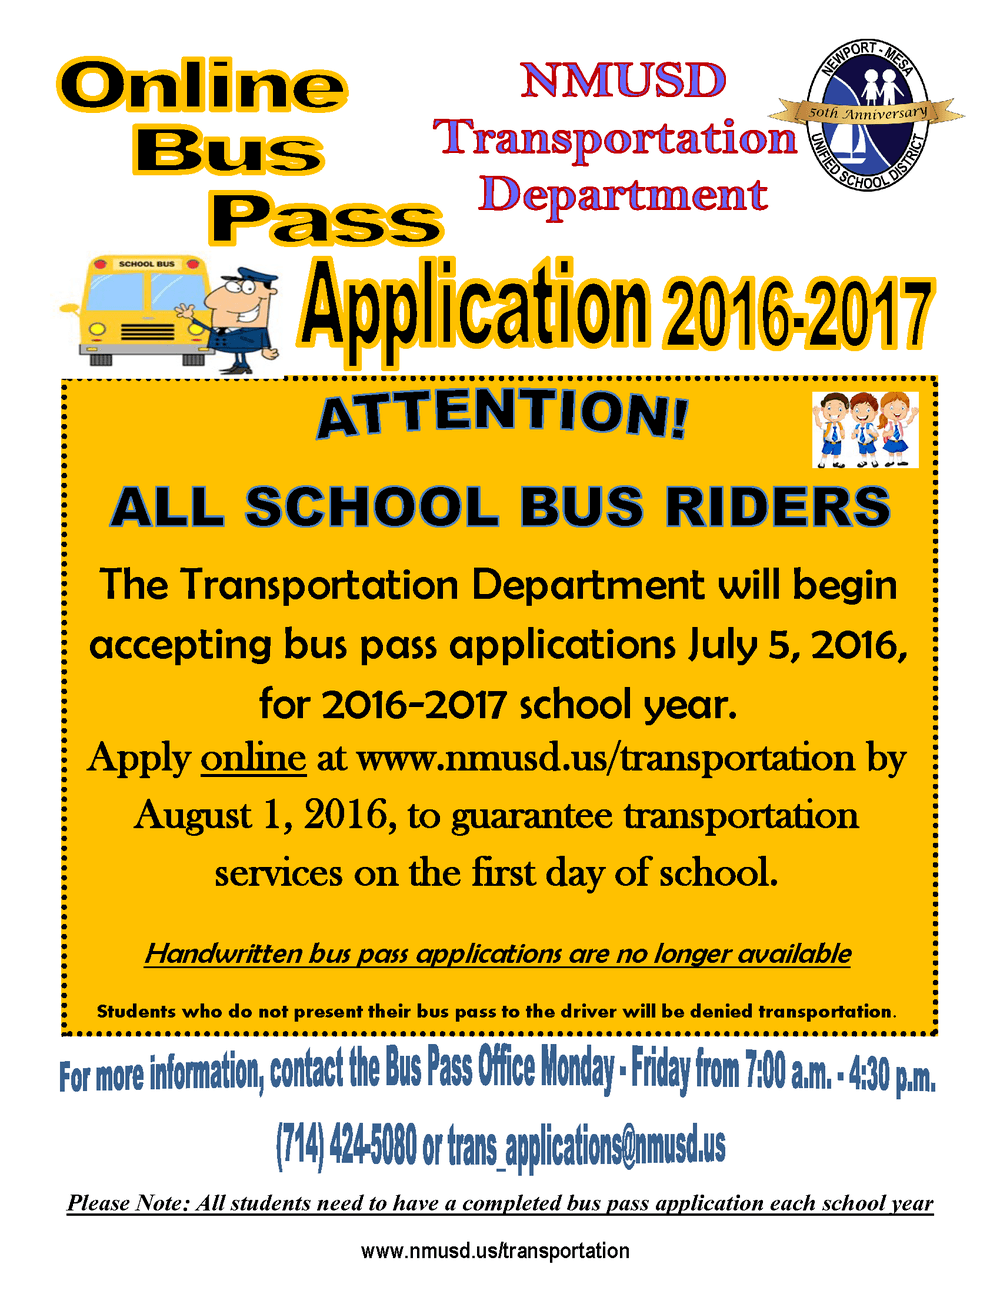 Online Bus Pass Application ALL SCHOOLS_Page_1.png